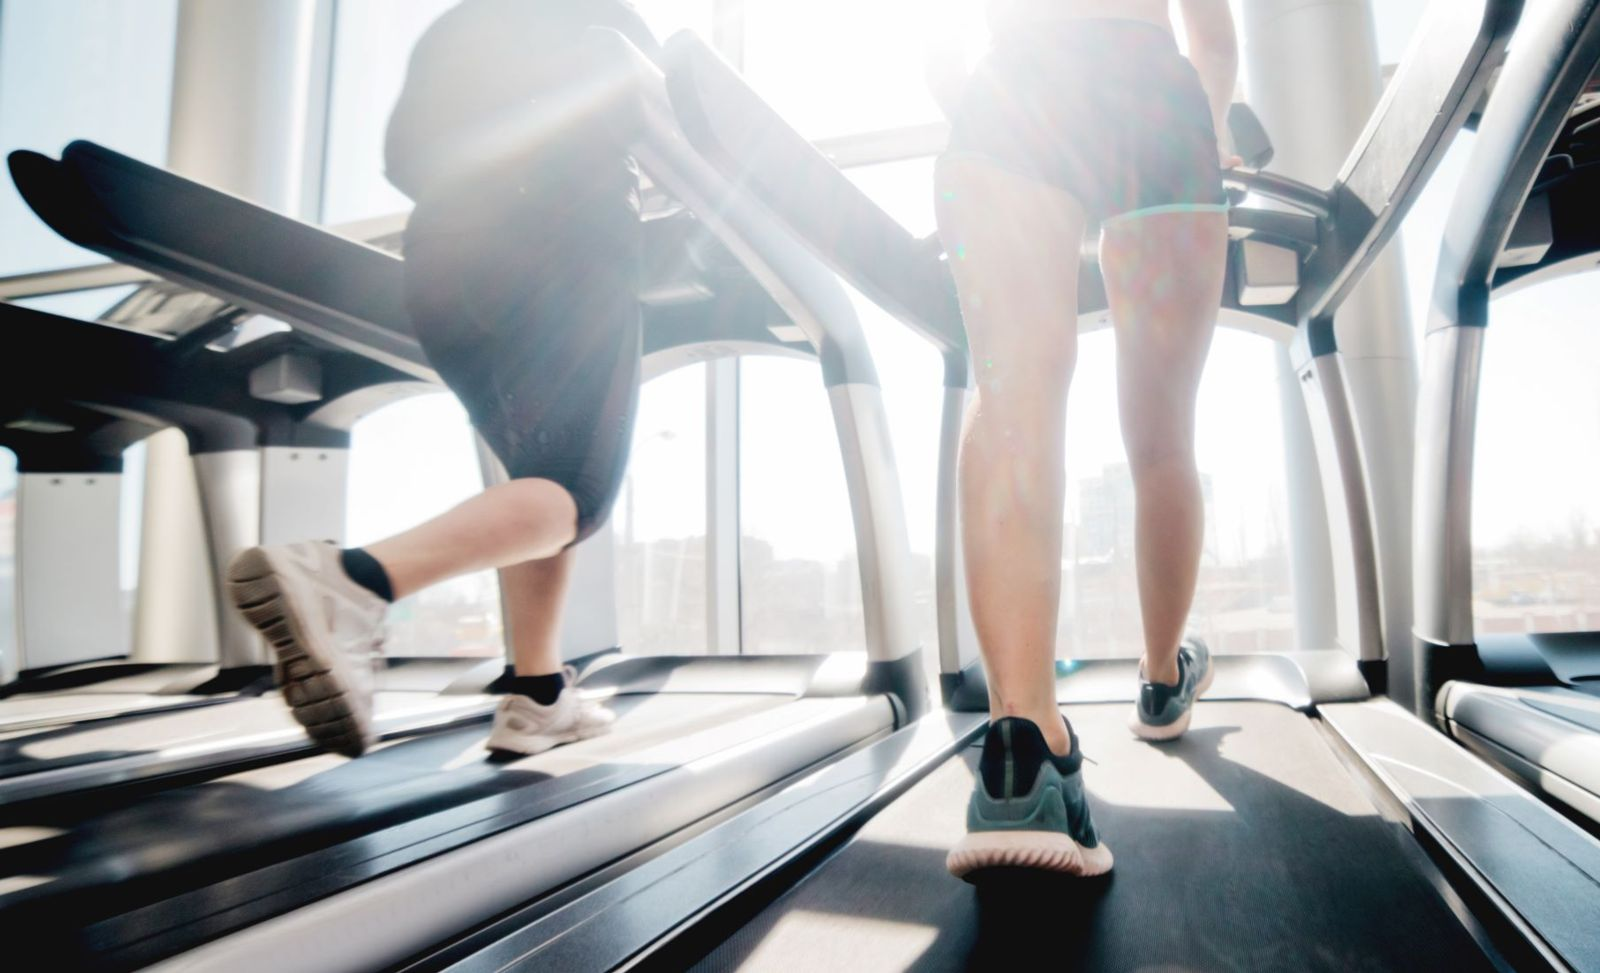 Treadmill runs are a great alternative when outdoor training isn't possible, but watch out for these common treadmill injuries!